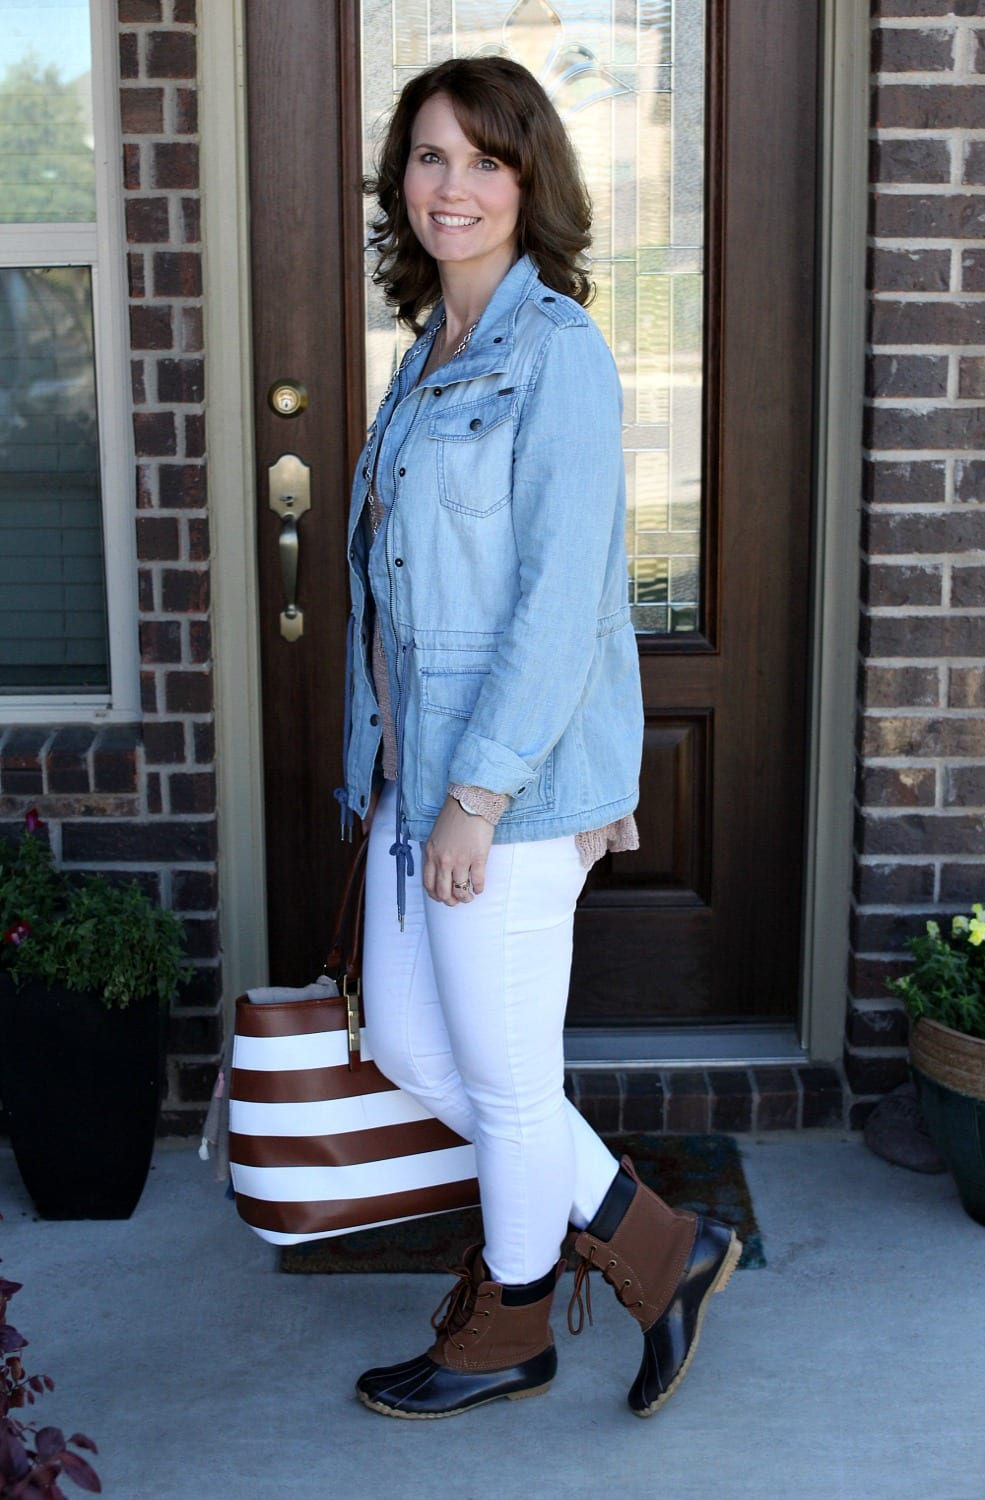 Duck Boots Outfit for Spring